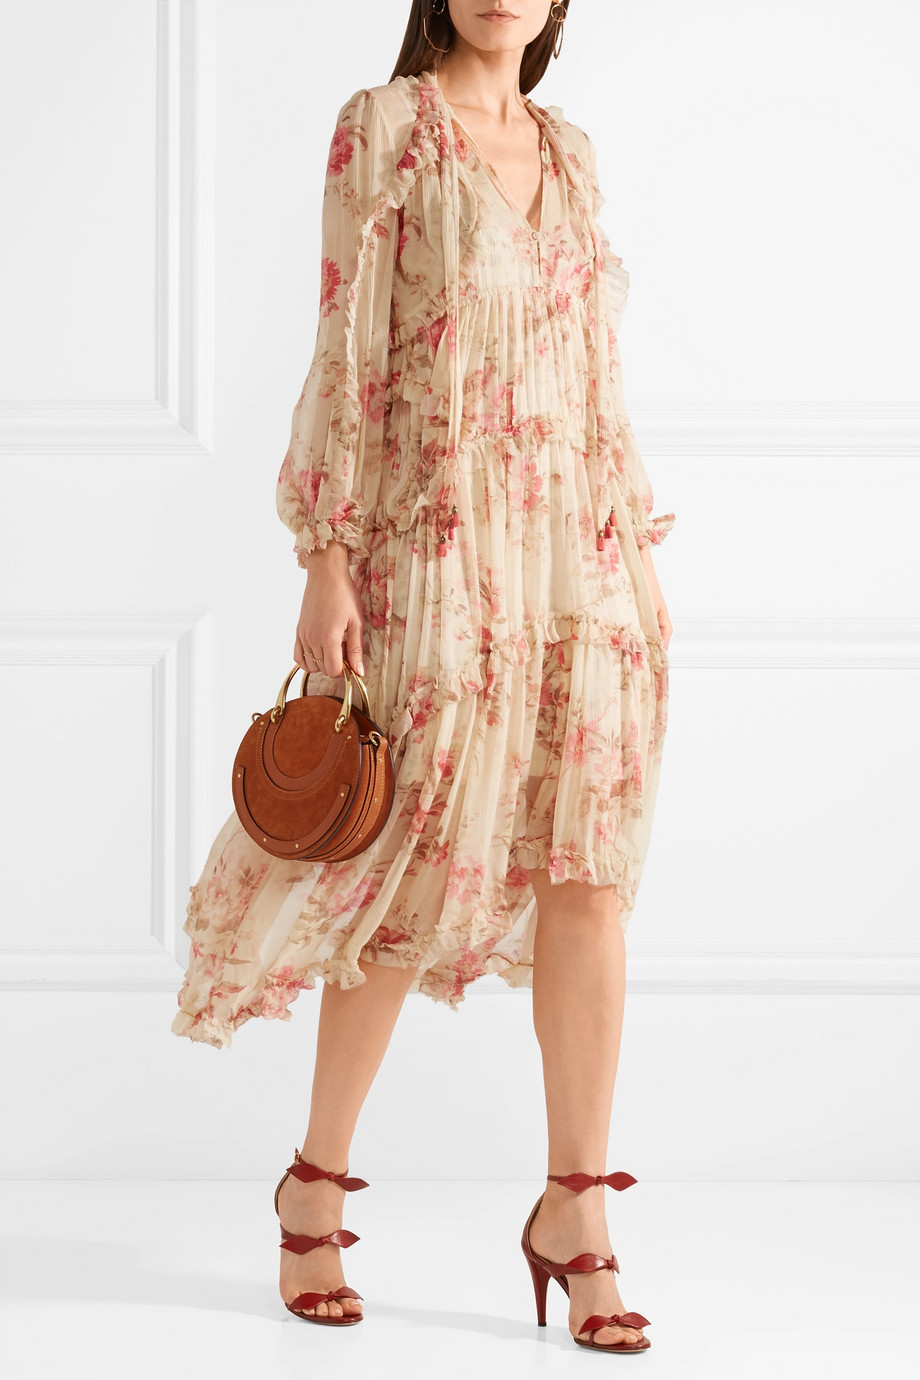 Zimmerman Cosair Floral Ruffled Dress